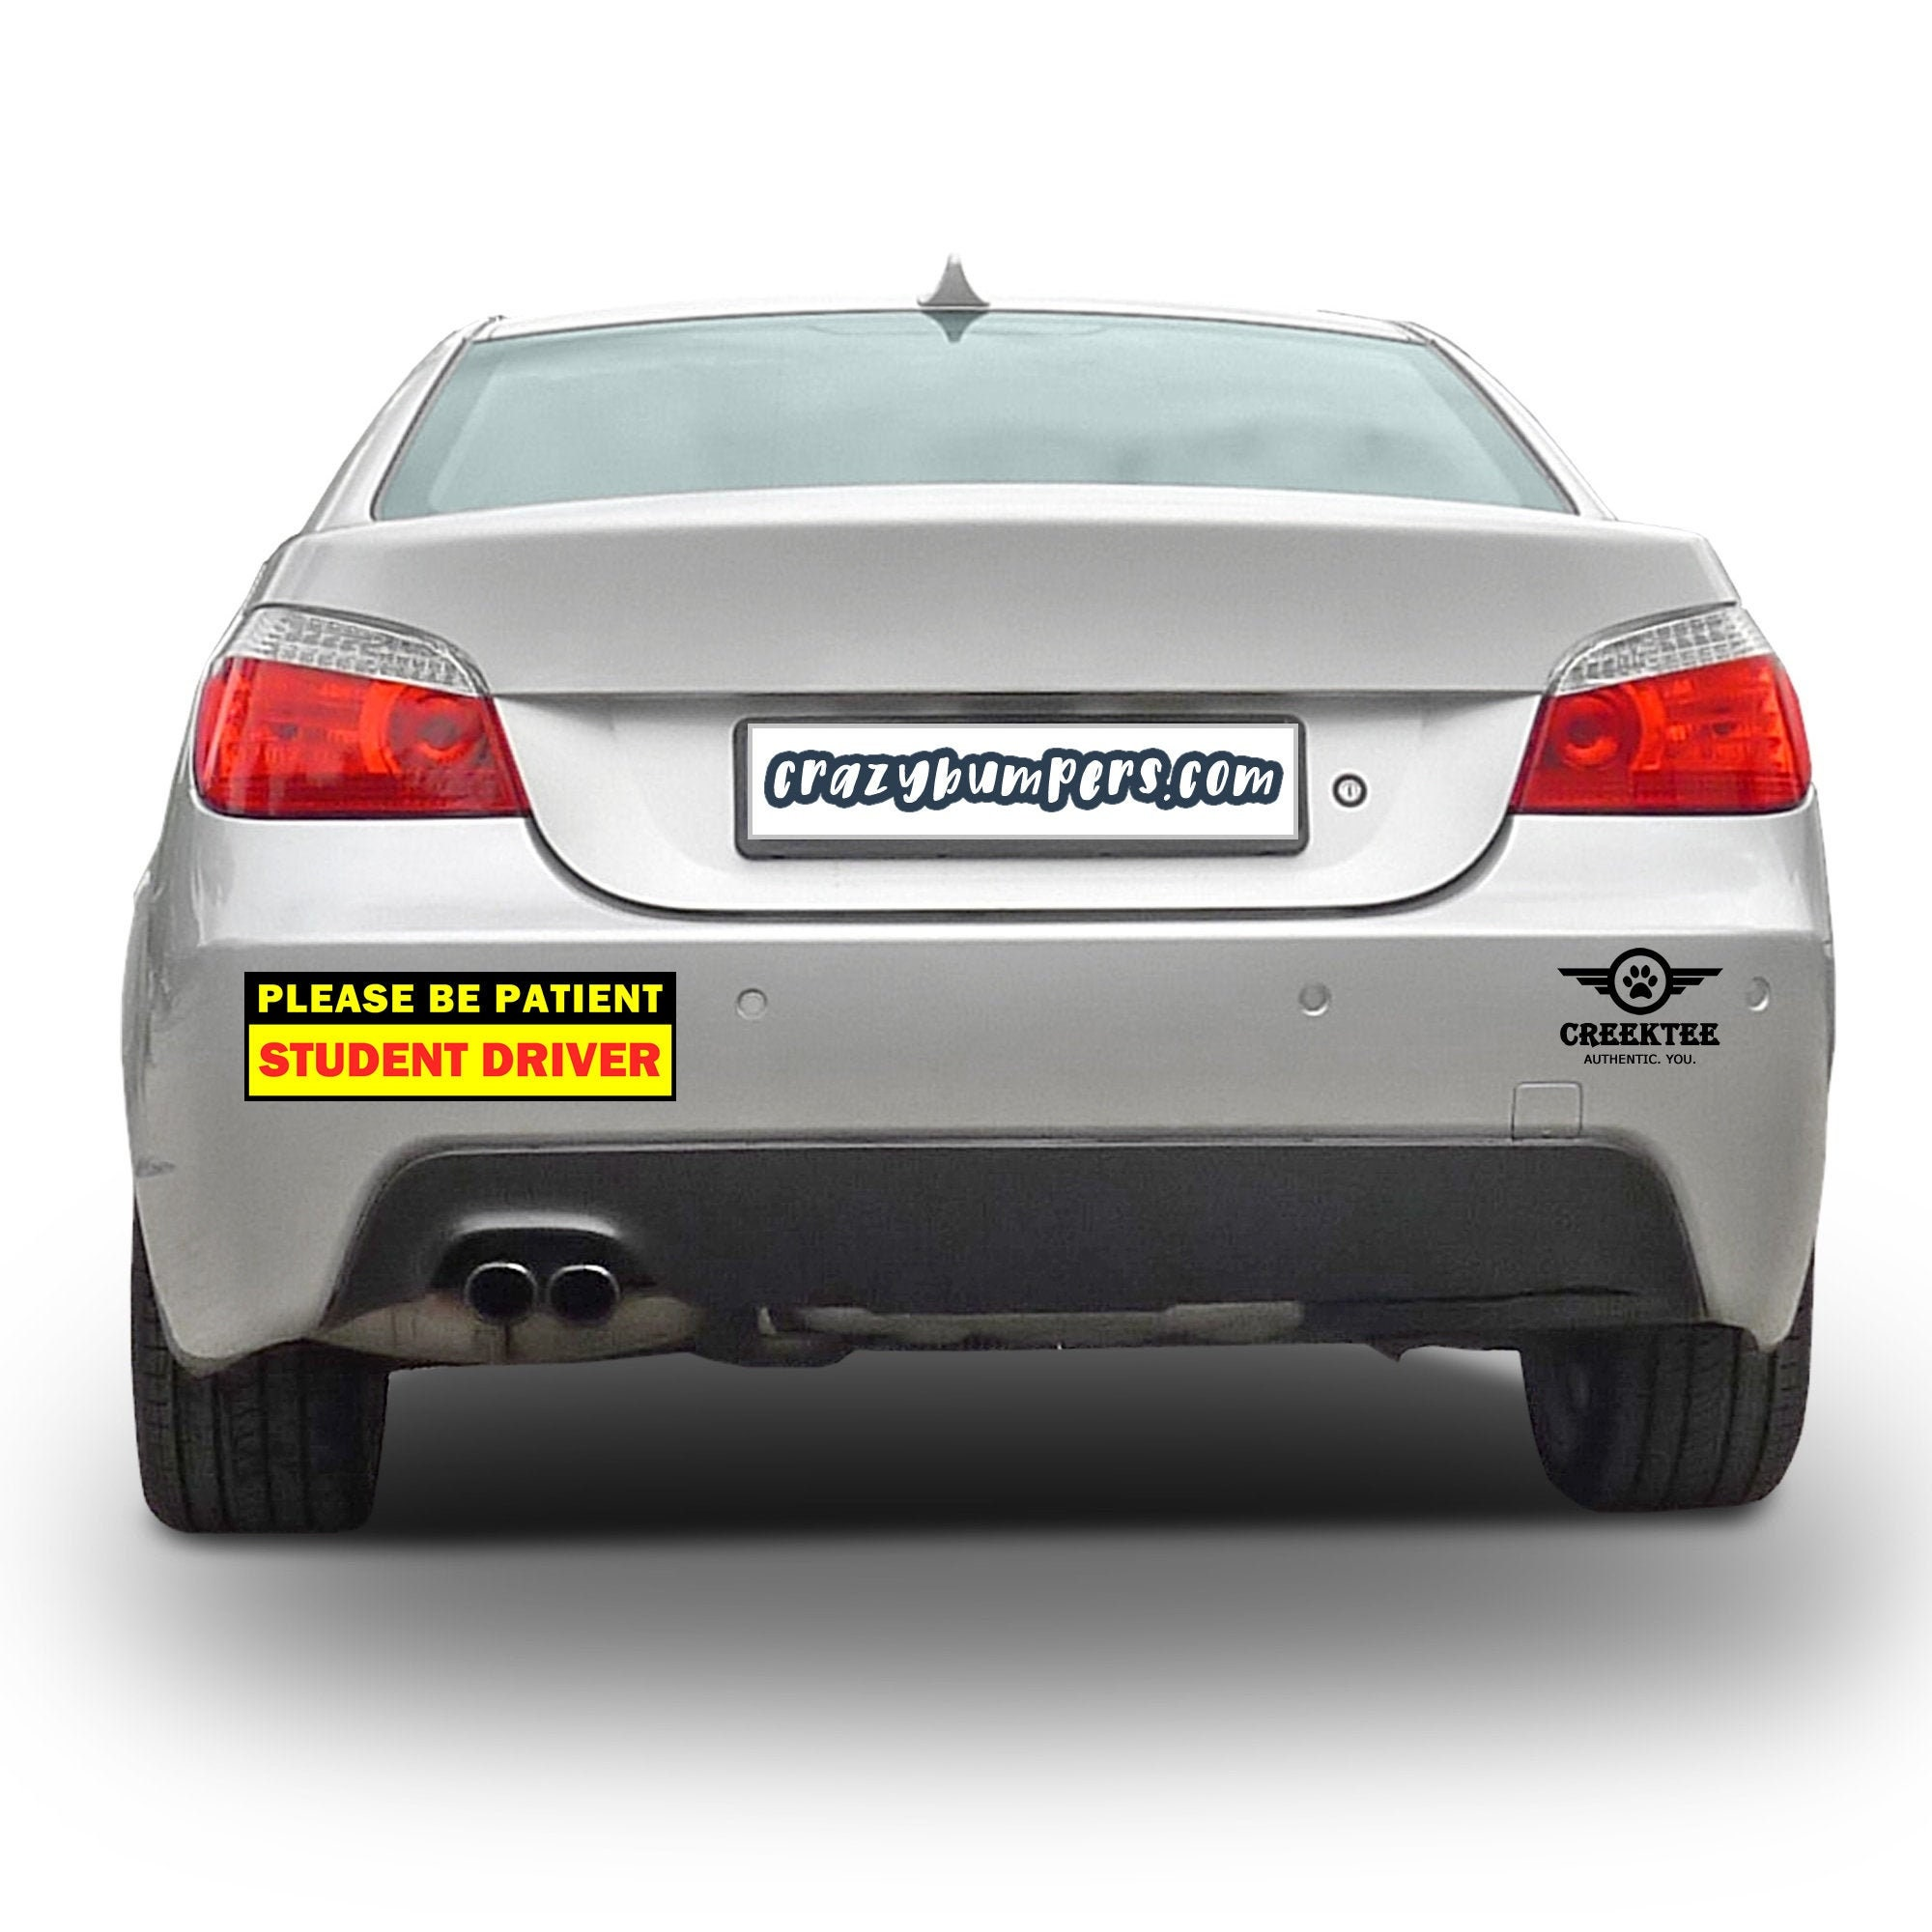 CAD$13.94 - 2X Bundle - Please Be Patient Student Driver Bumper Sticker 10 x 3 Bumper Sticker or Magnetic Bumper Sticker Available